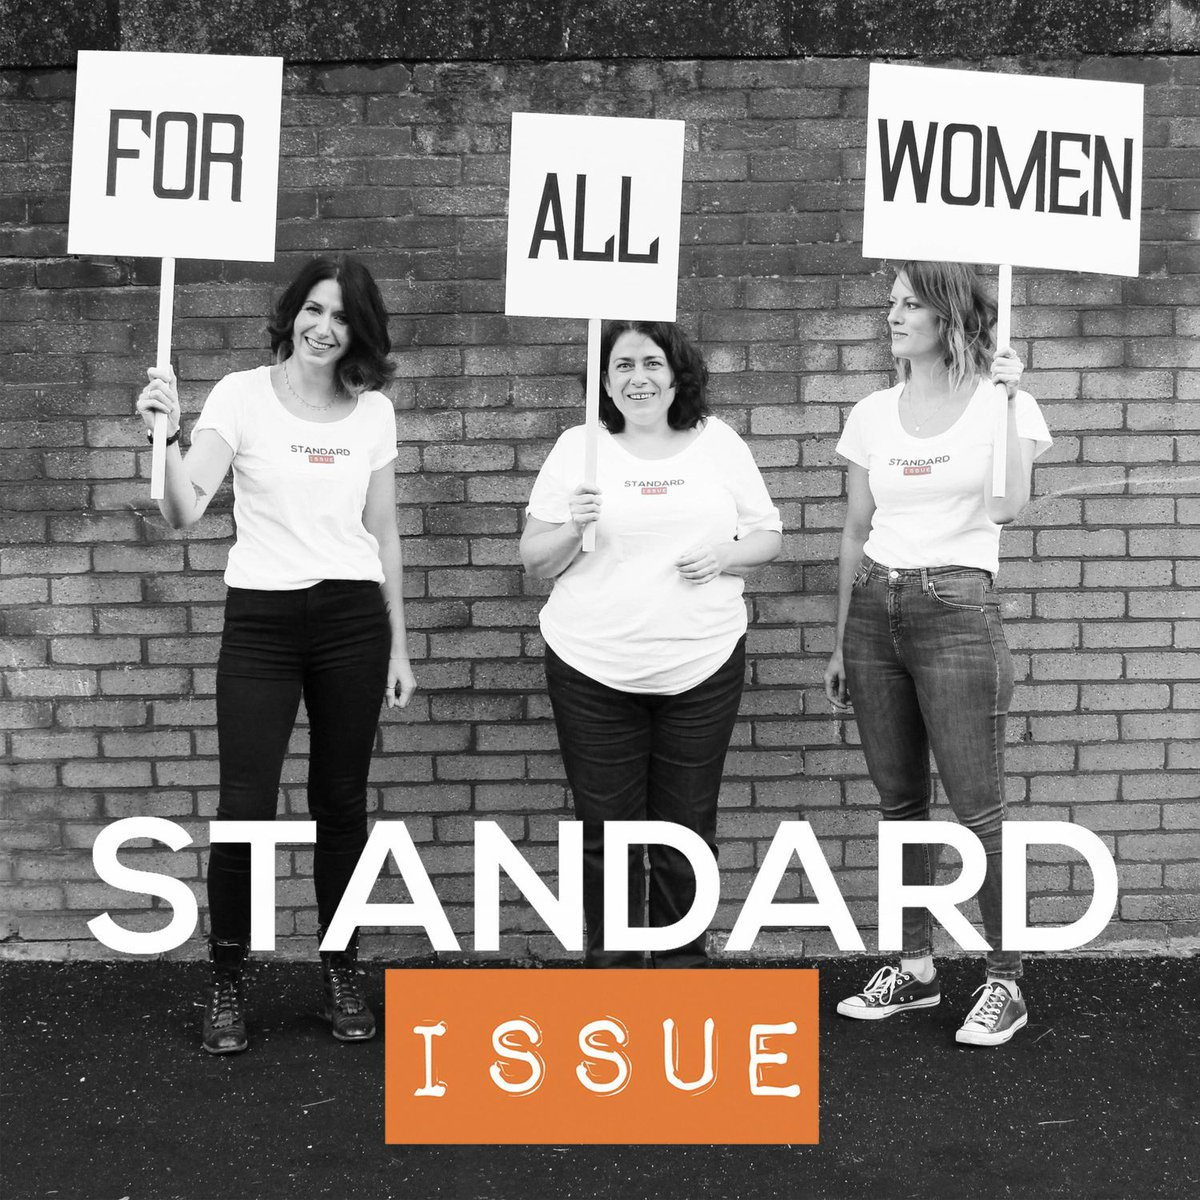 At a loose end this weekend? Listen to Standard Issue podcast!   🎧💕  ... Thank us later 😘  #standardissue #forallwomen #podcast